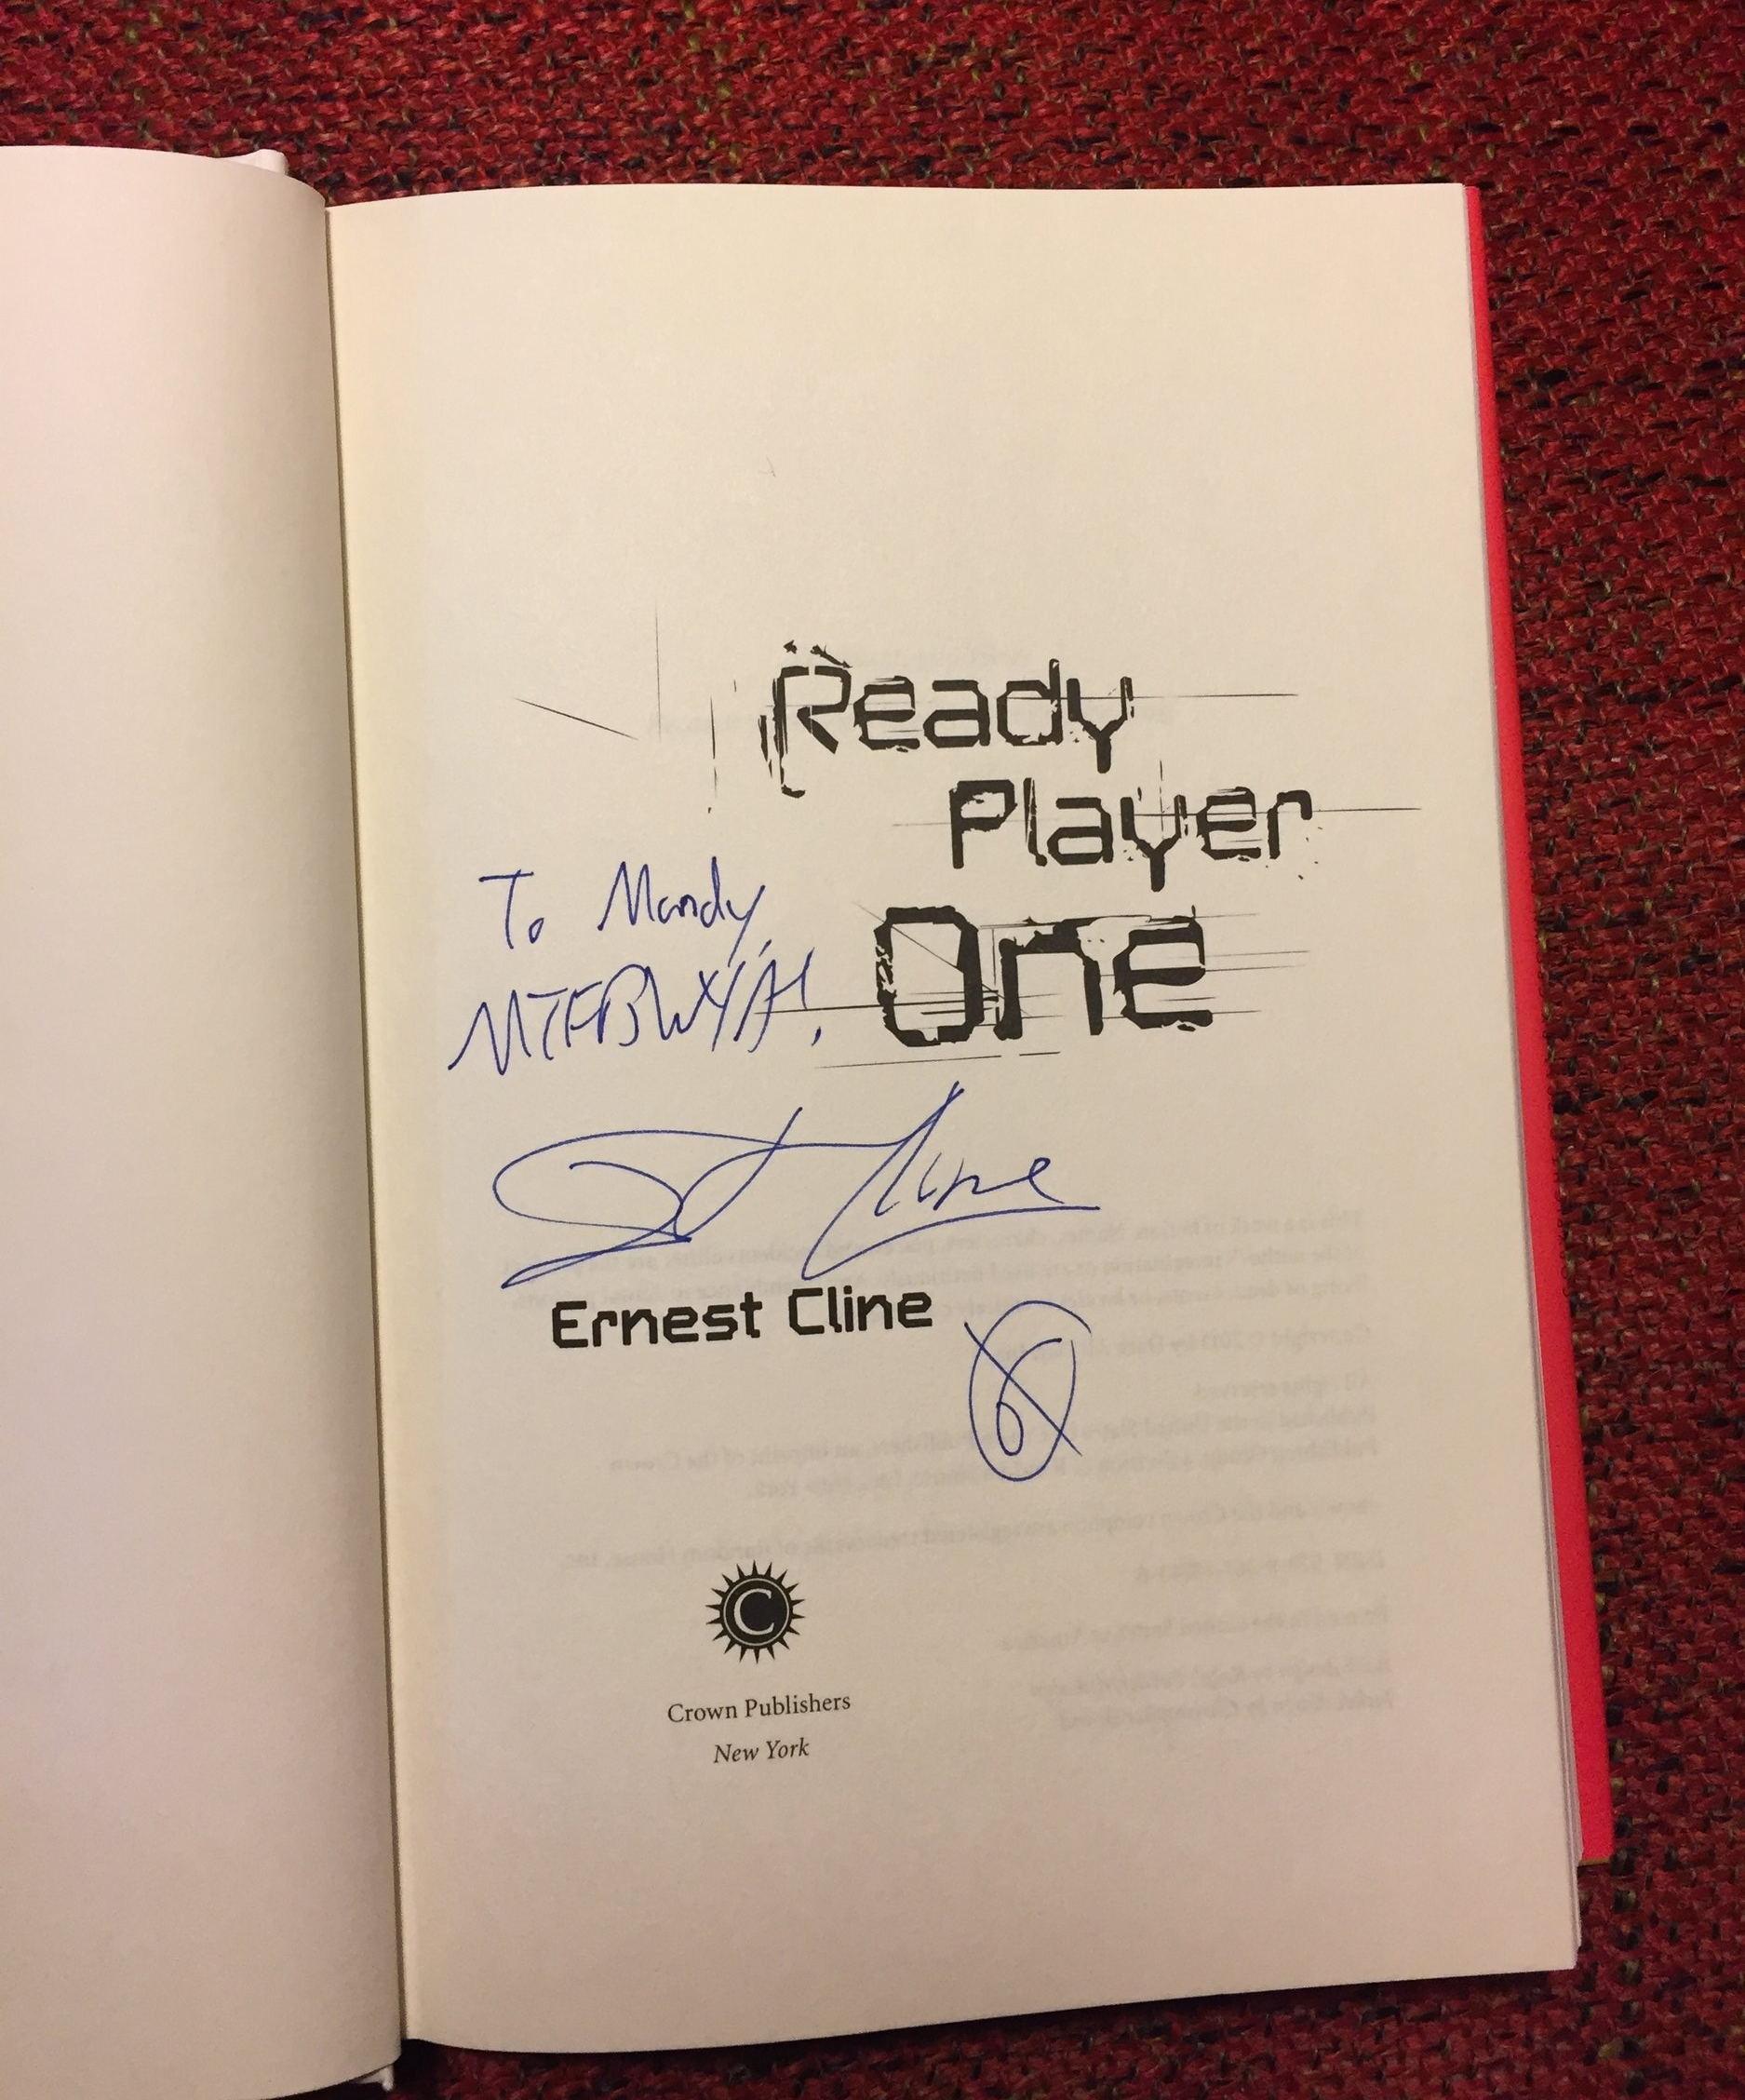 """[image description: the page in my copy of Ready Player One where the author signed the book. It says, """"To Mandy, MTFBWYA! - Ernest Cline."""" The MTFBWYA acronym stands for May the Force Be With You Always."""